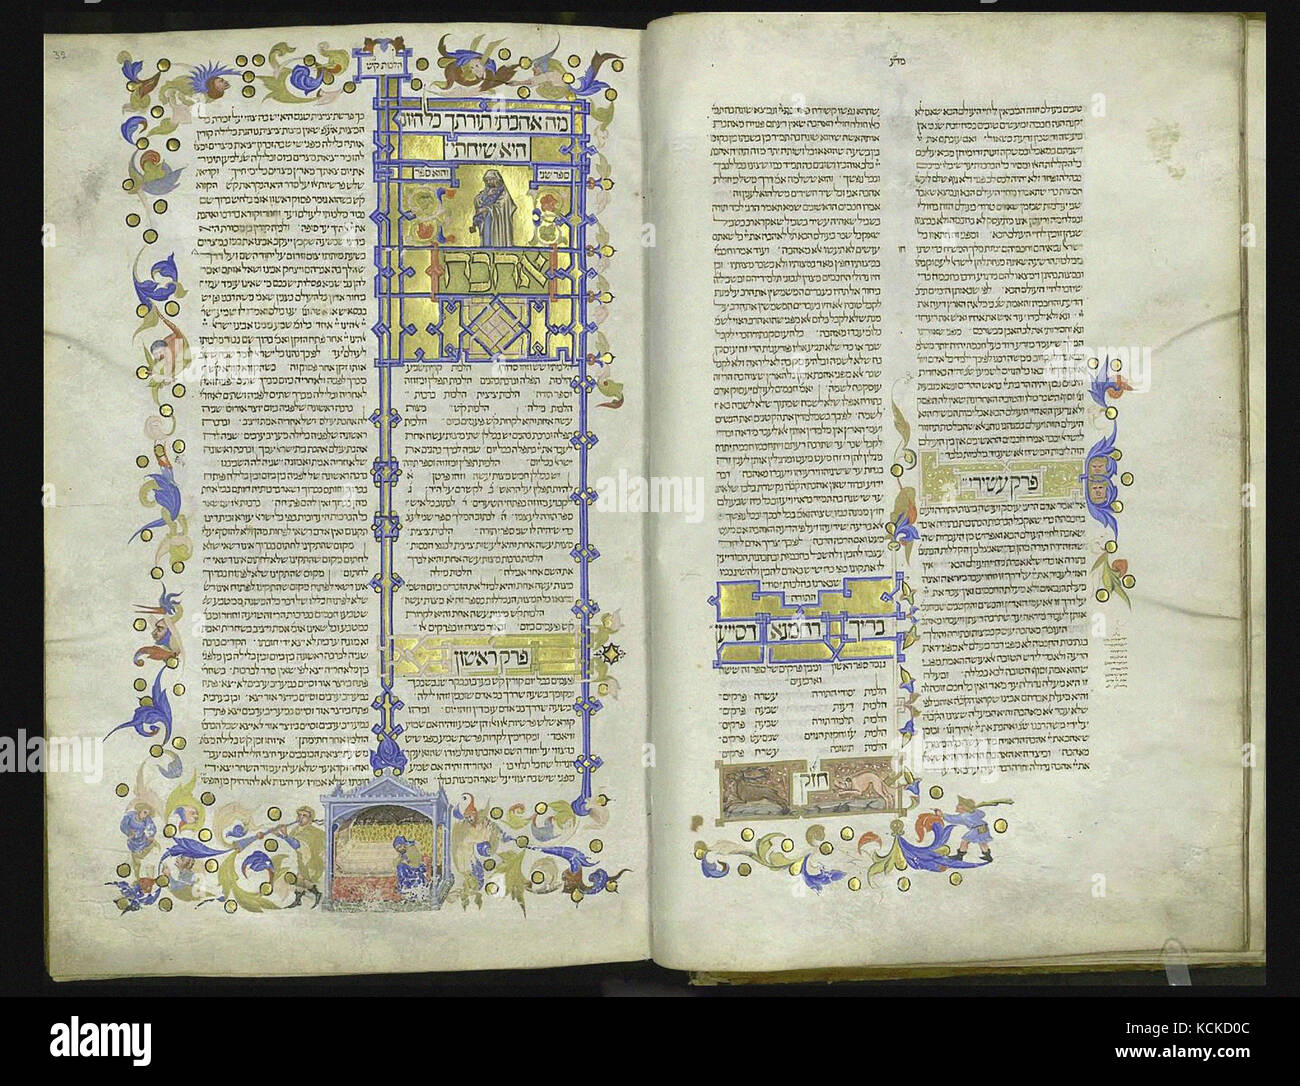 6092. Mishneh Torah by Maimonides, (Rabbi Moses ben Maimon) Hebrew manuscript dating 1180, this a a copy by Mateo - Stock Image